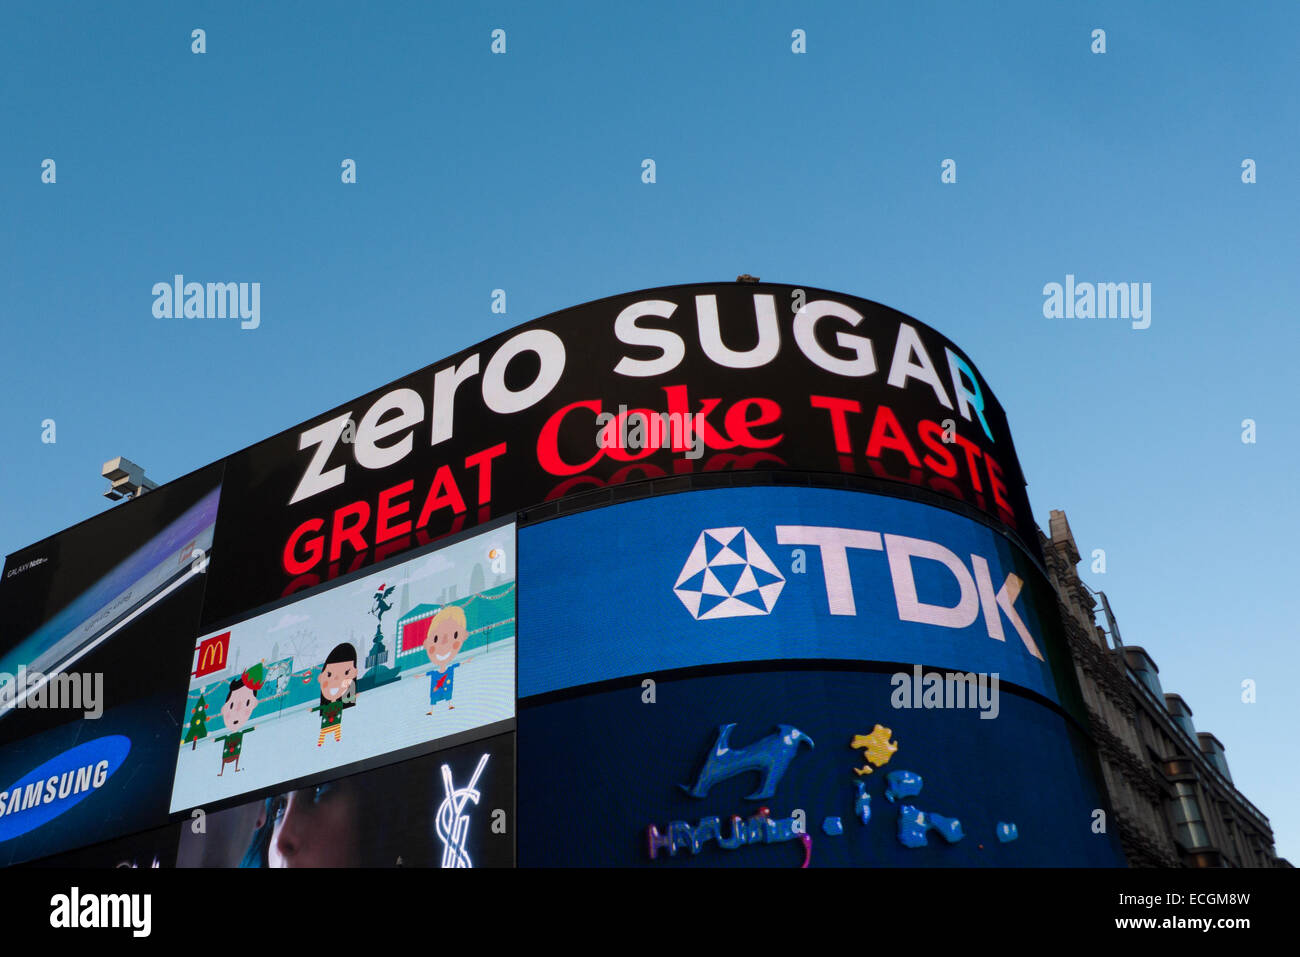 Zero Sugar Coke Coca-Cola neon advertisement on a building in Piccadilly Circus London, UK  KATHY DEWITT - Stock Image